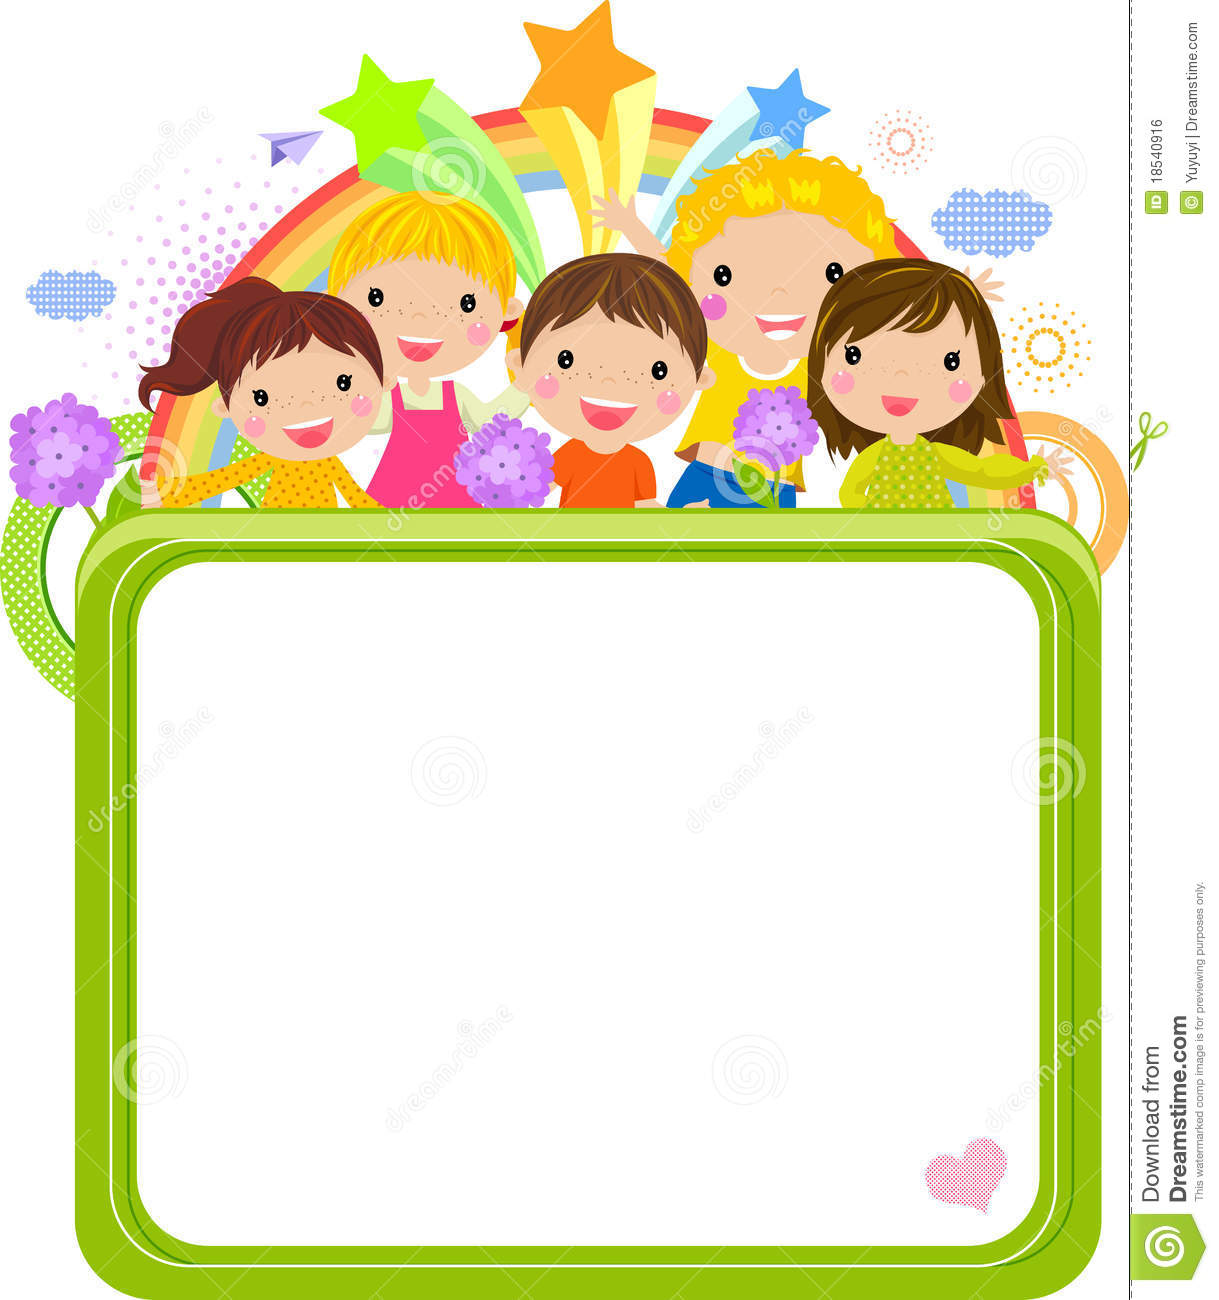 royalty free stock photo download cute cartoon kids - Download Free Kids Cartoon